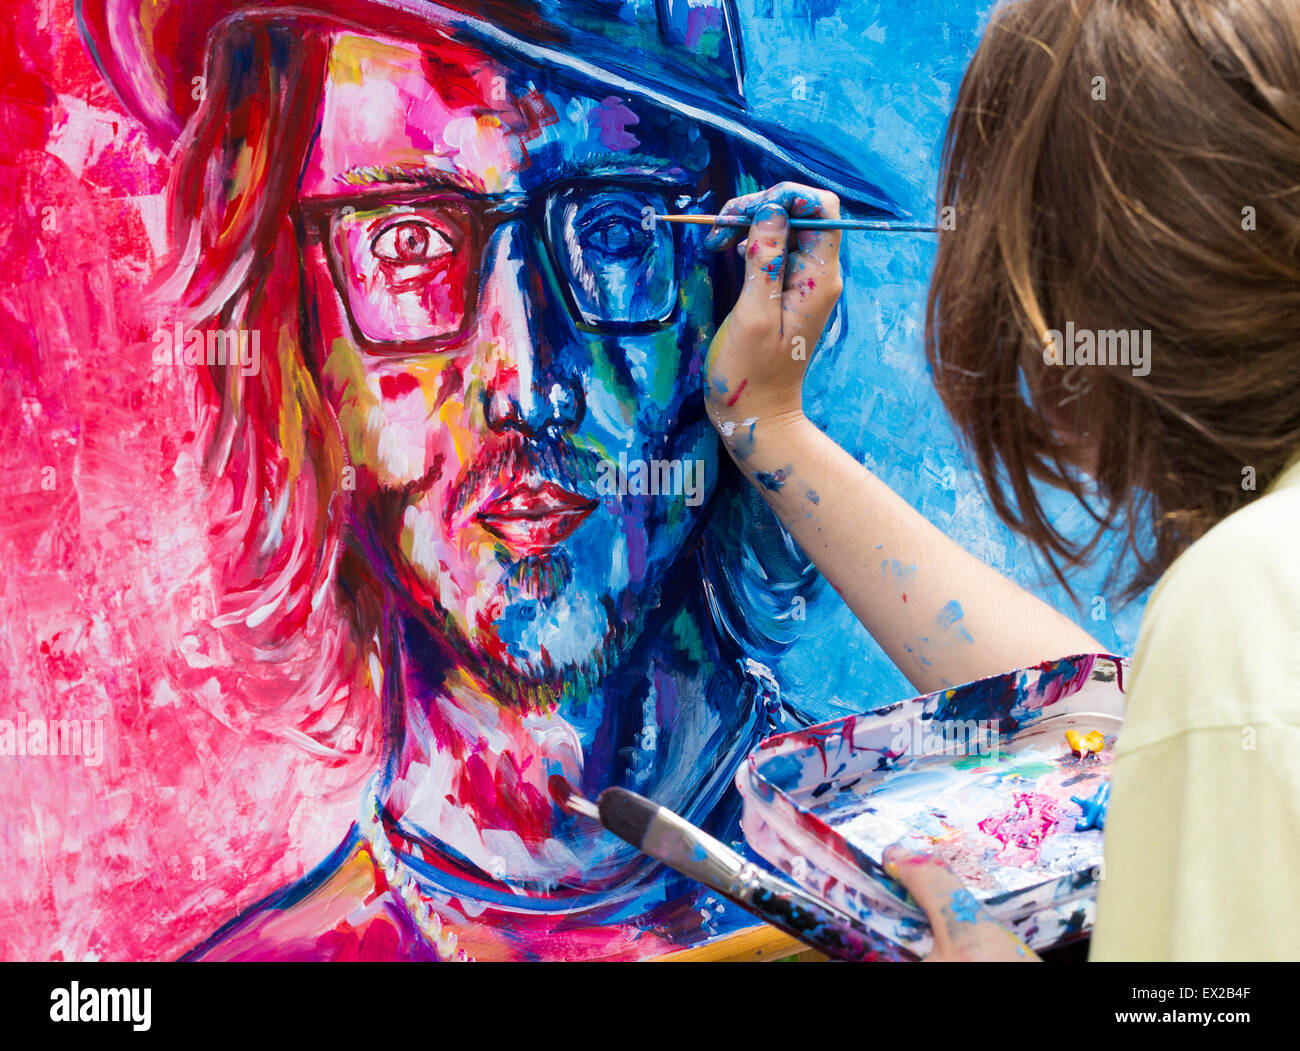 Las Palmas, Gran Canaria, Canary Islands, Spain. 4th July, 2015. Finishing touches to Johnny Depp  portrait as 180 - Stock Image